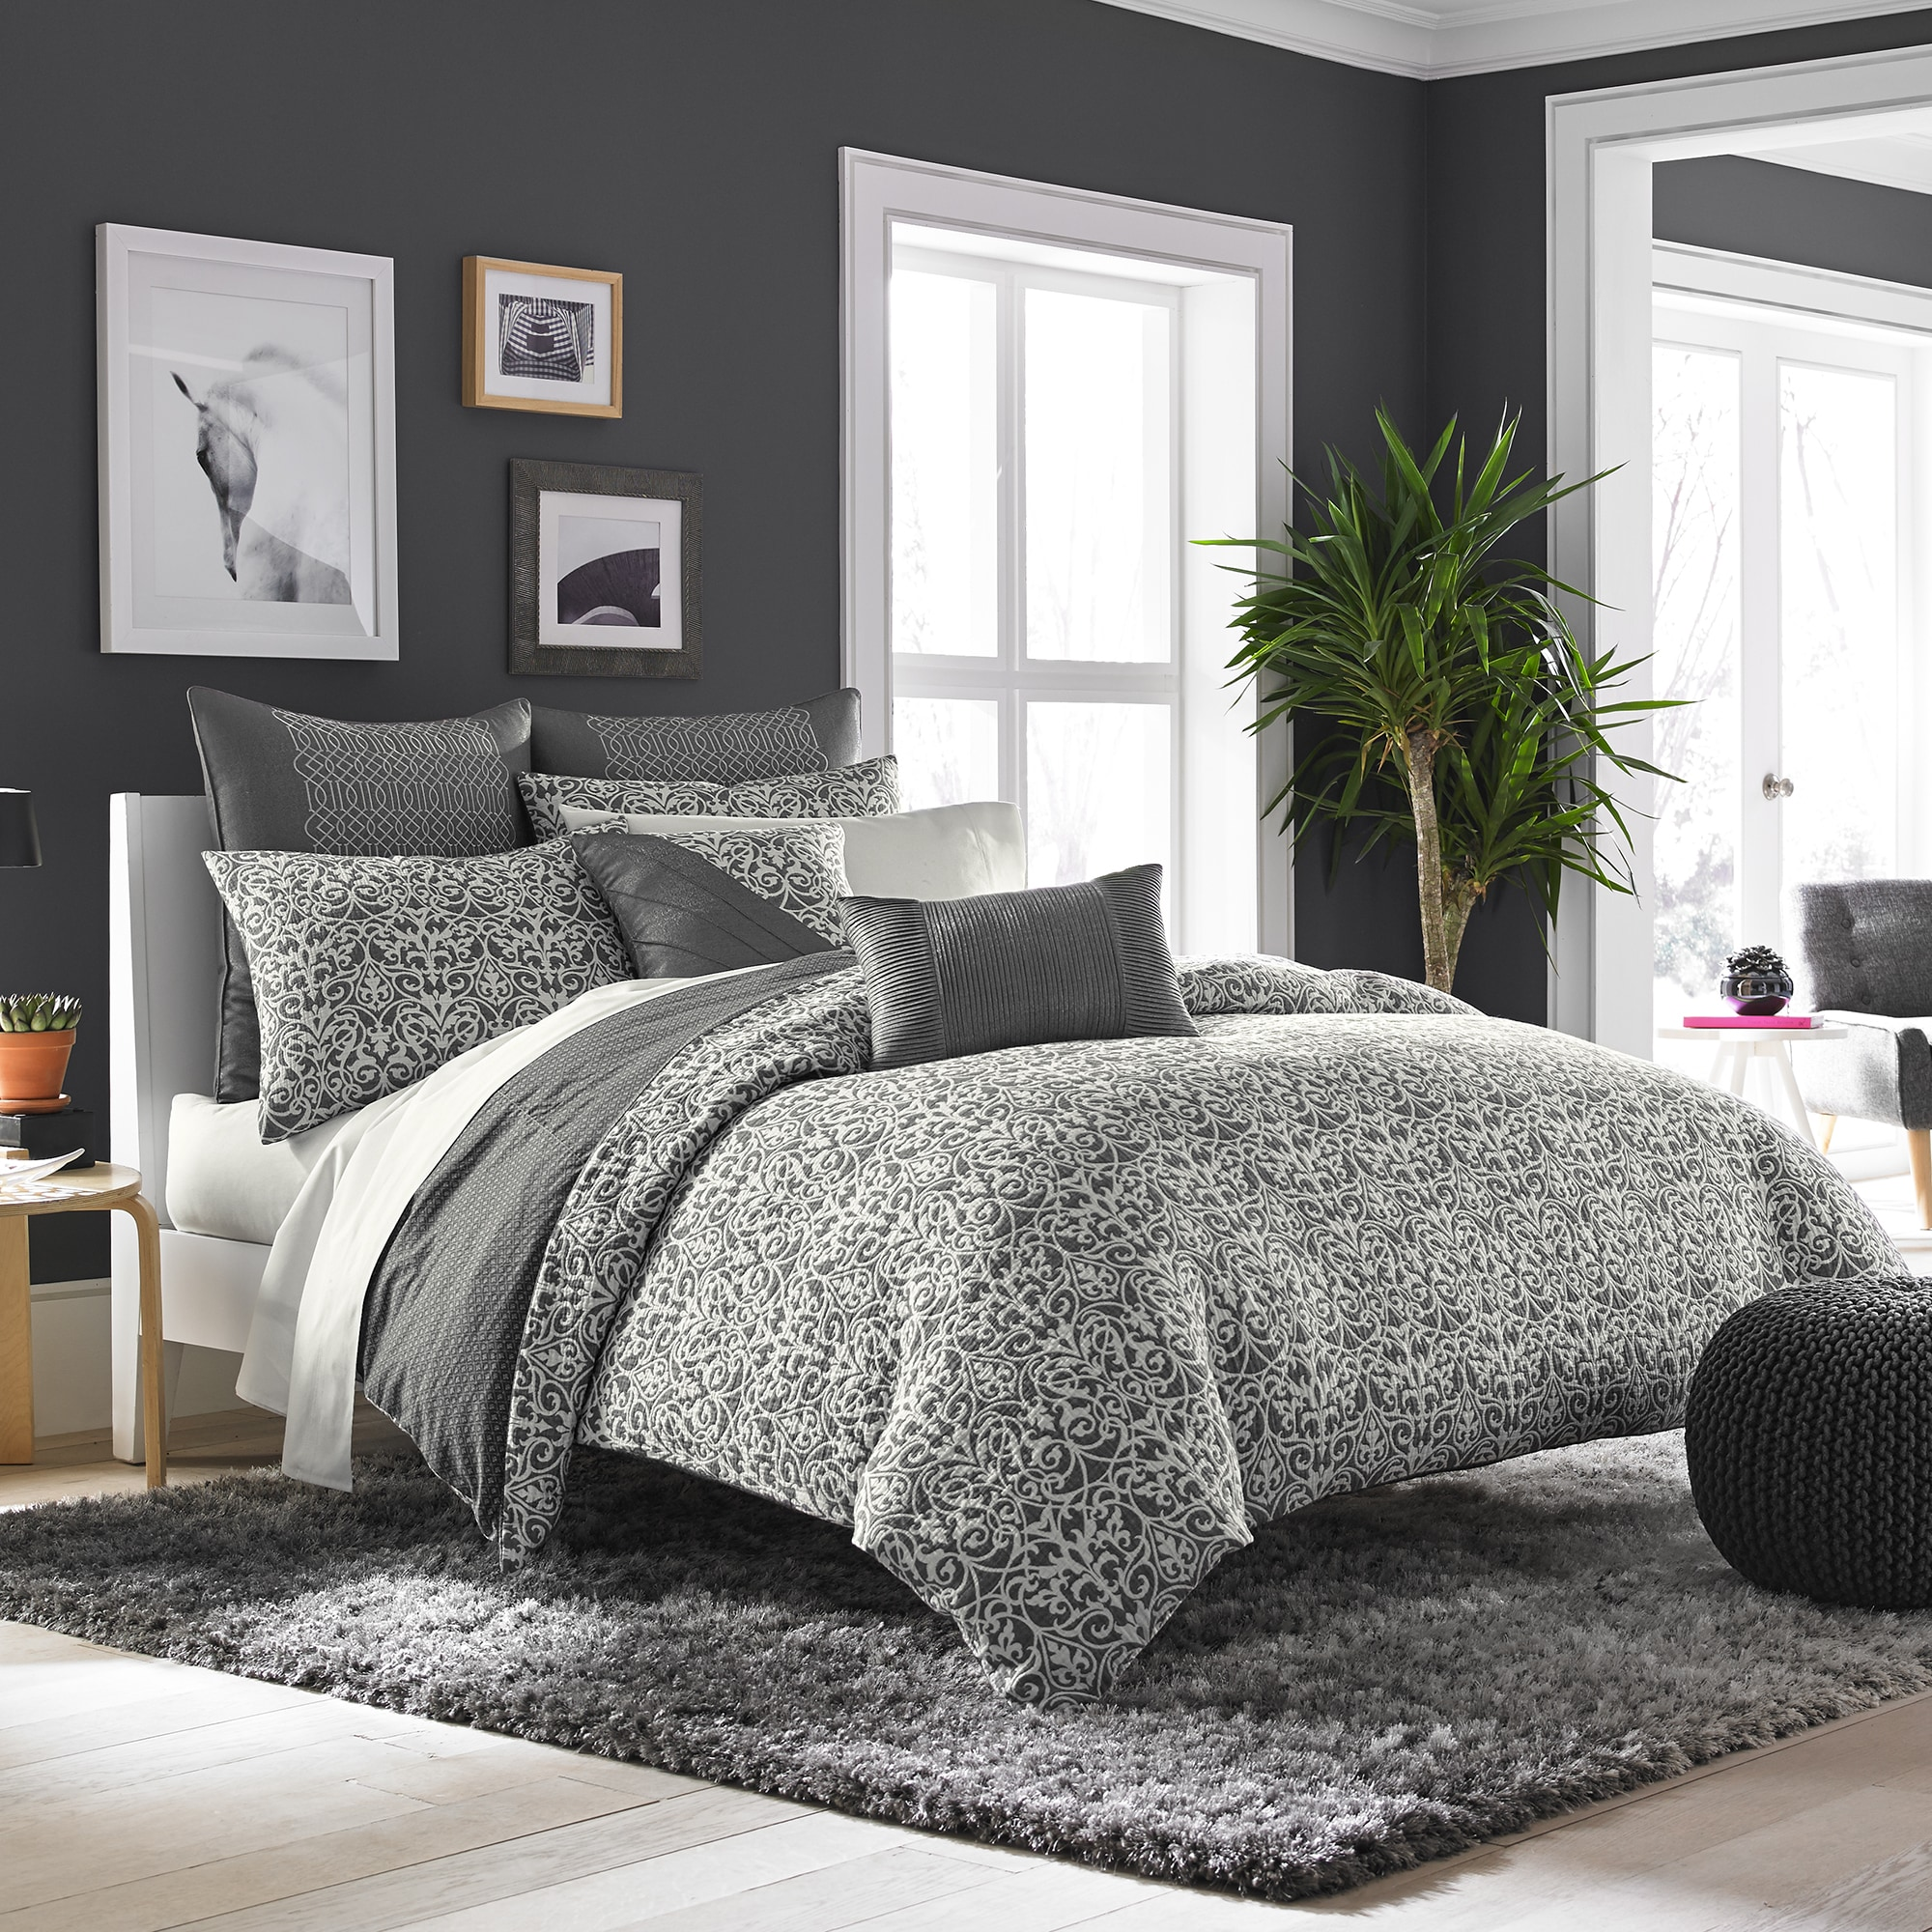 unisonhome white shop himmeli cover style your matelasse b duvet share the look upload or unison